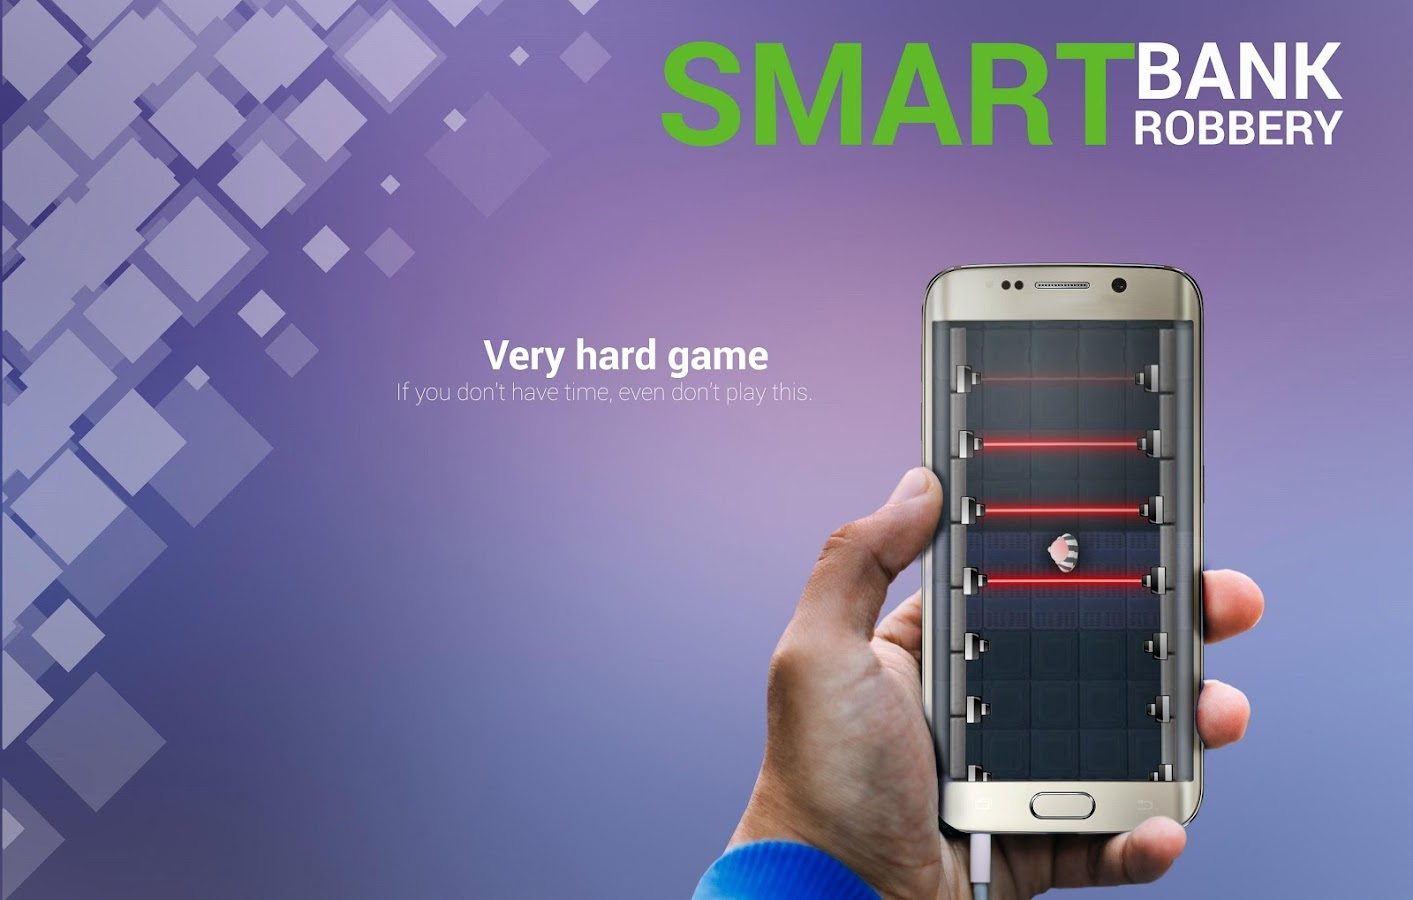 Smart bank robbery puzzle game- screenshot